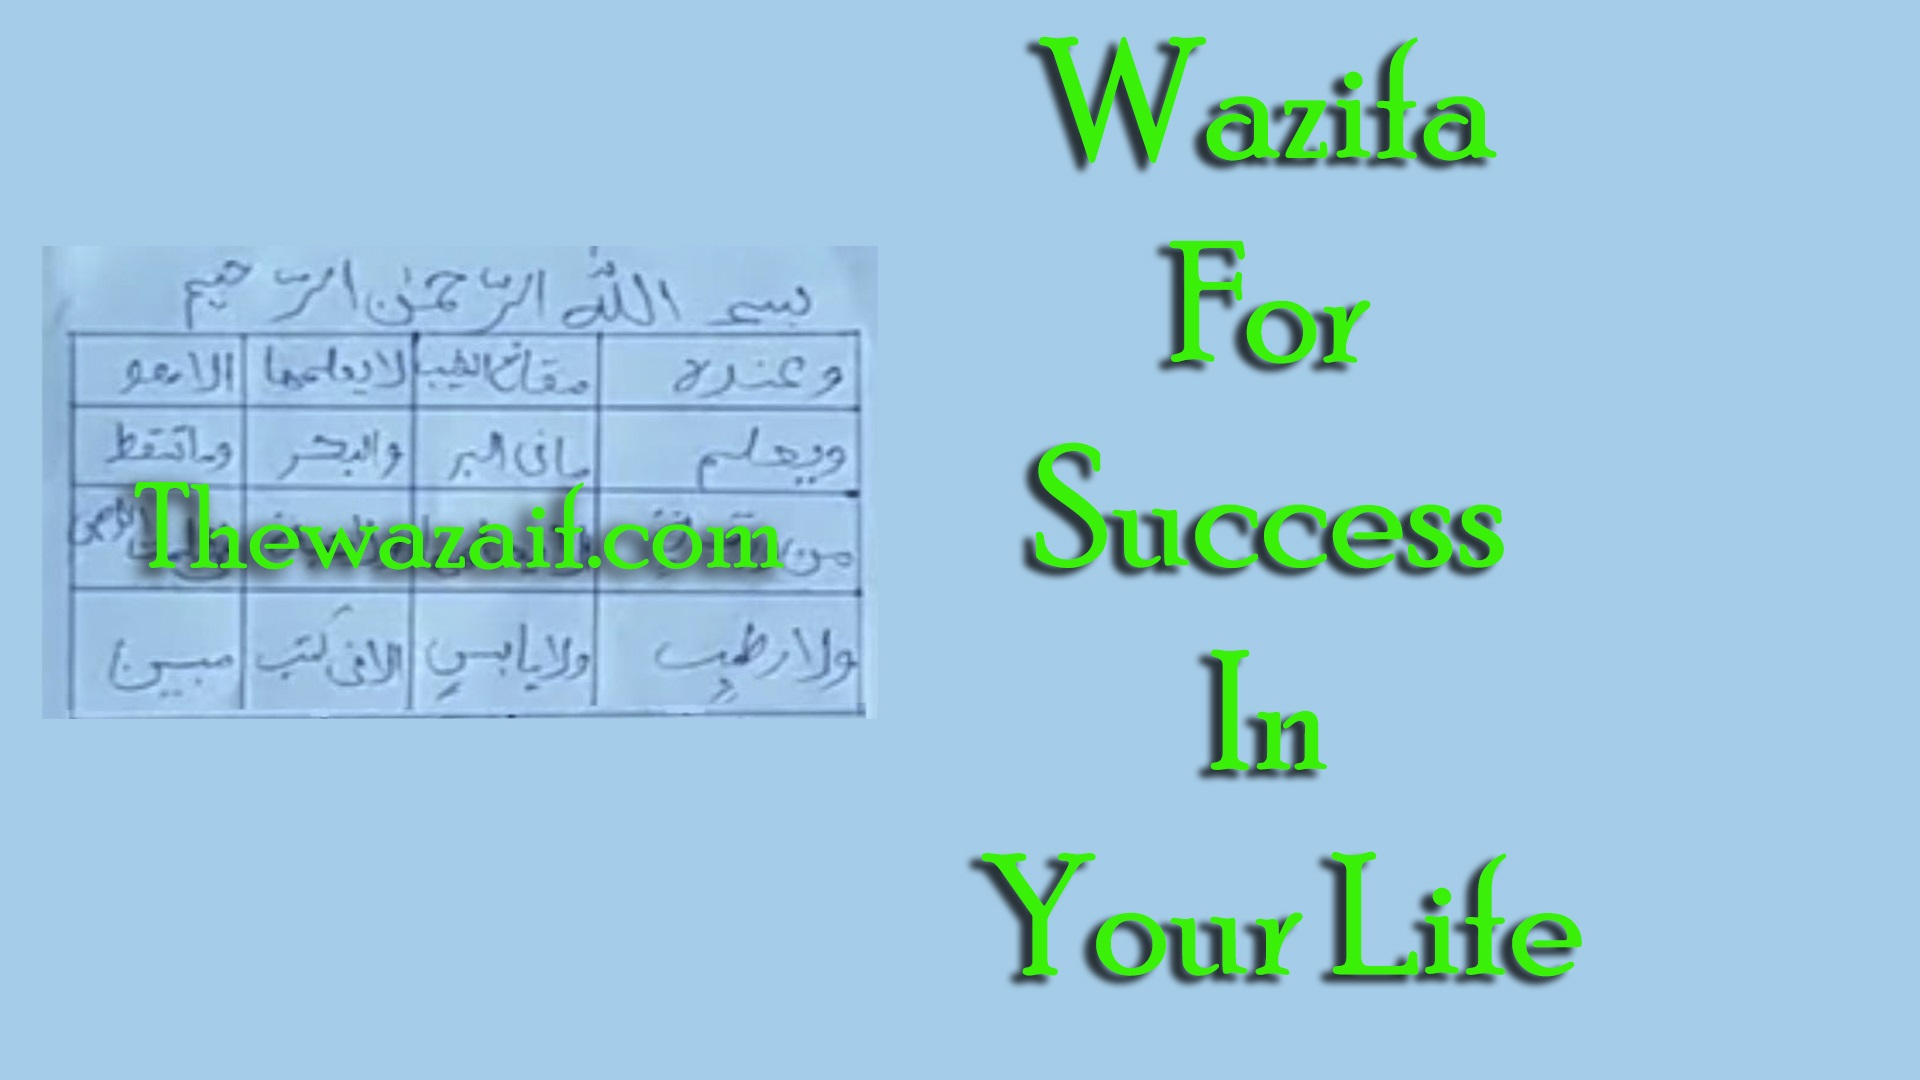 Powerful Wazifa For Success In Your Life - Business, Job